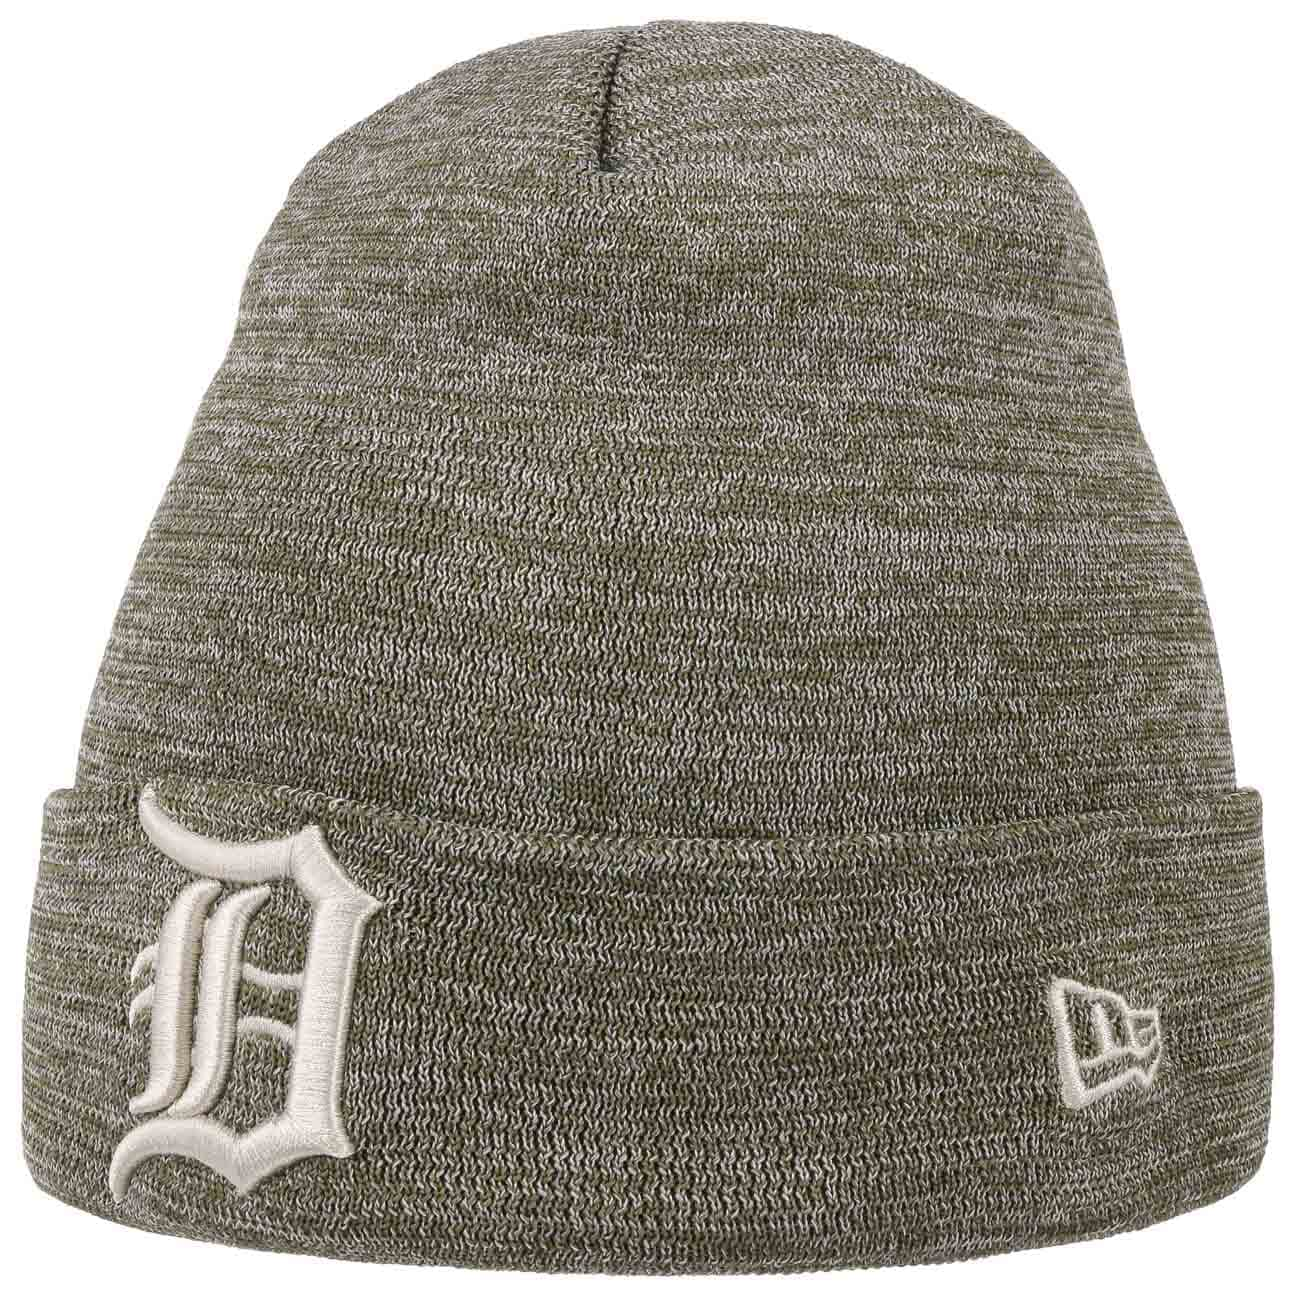 Beanie Eng Fit Cuff Tigers by New Era